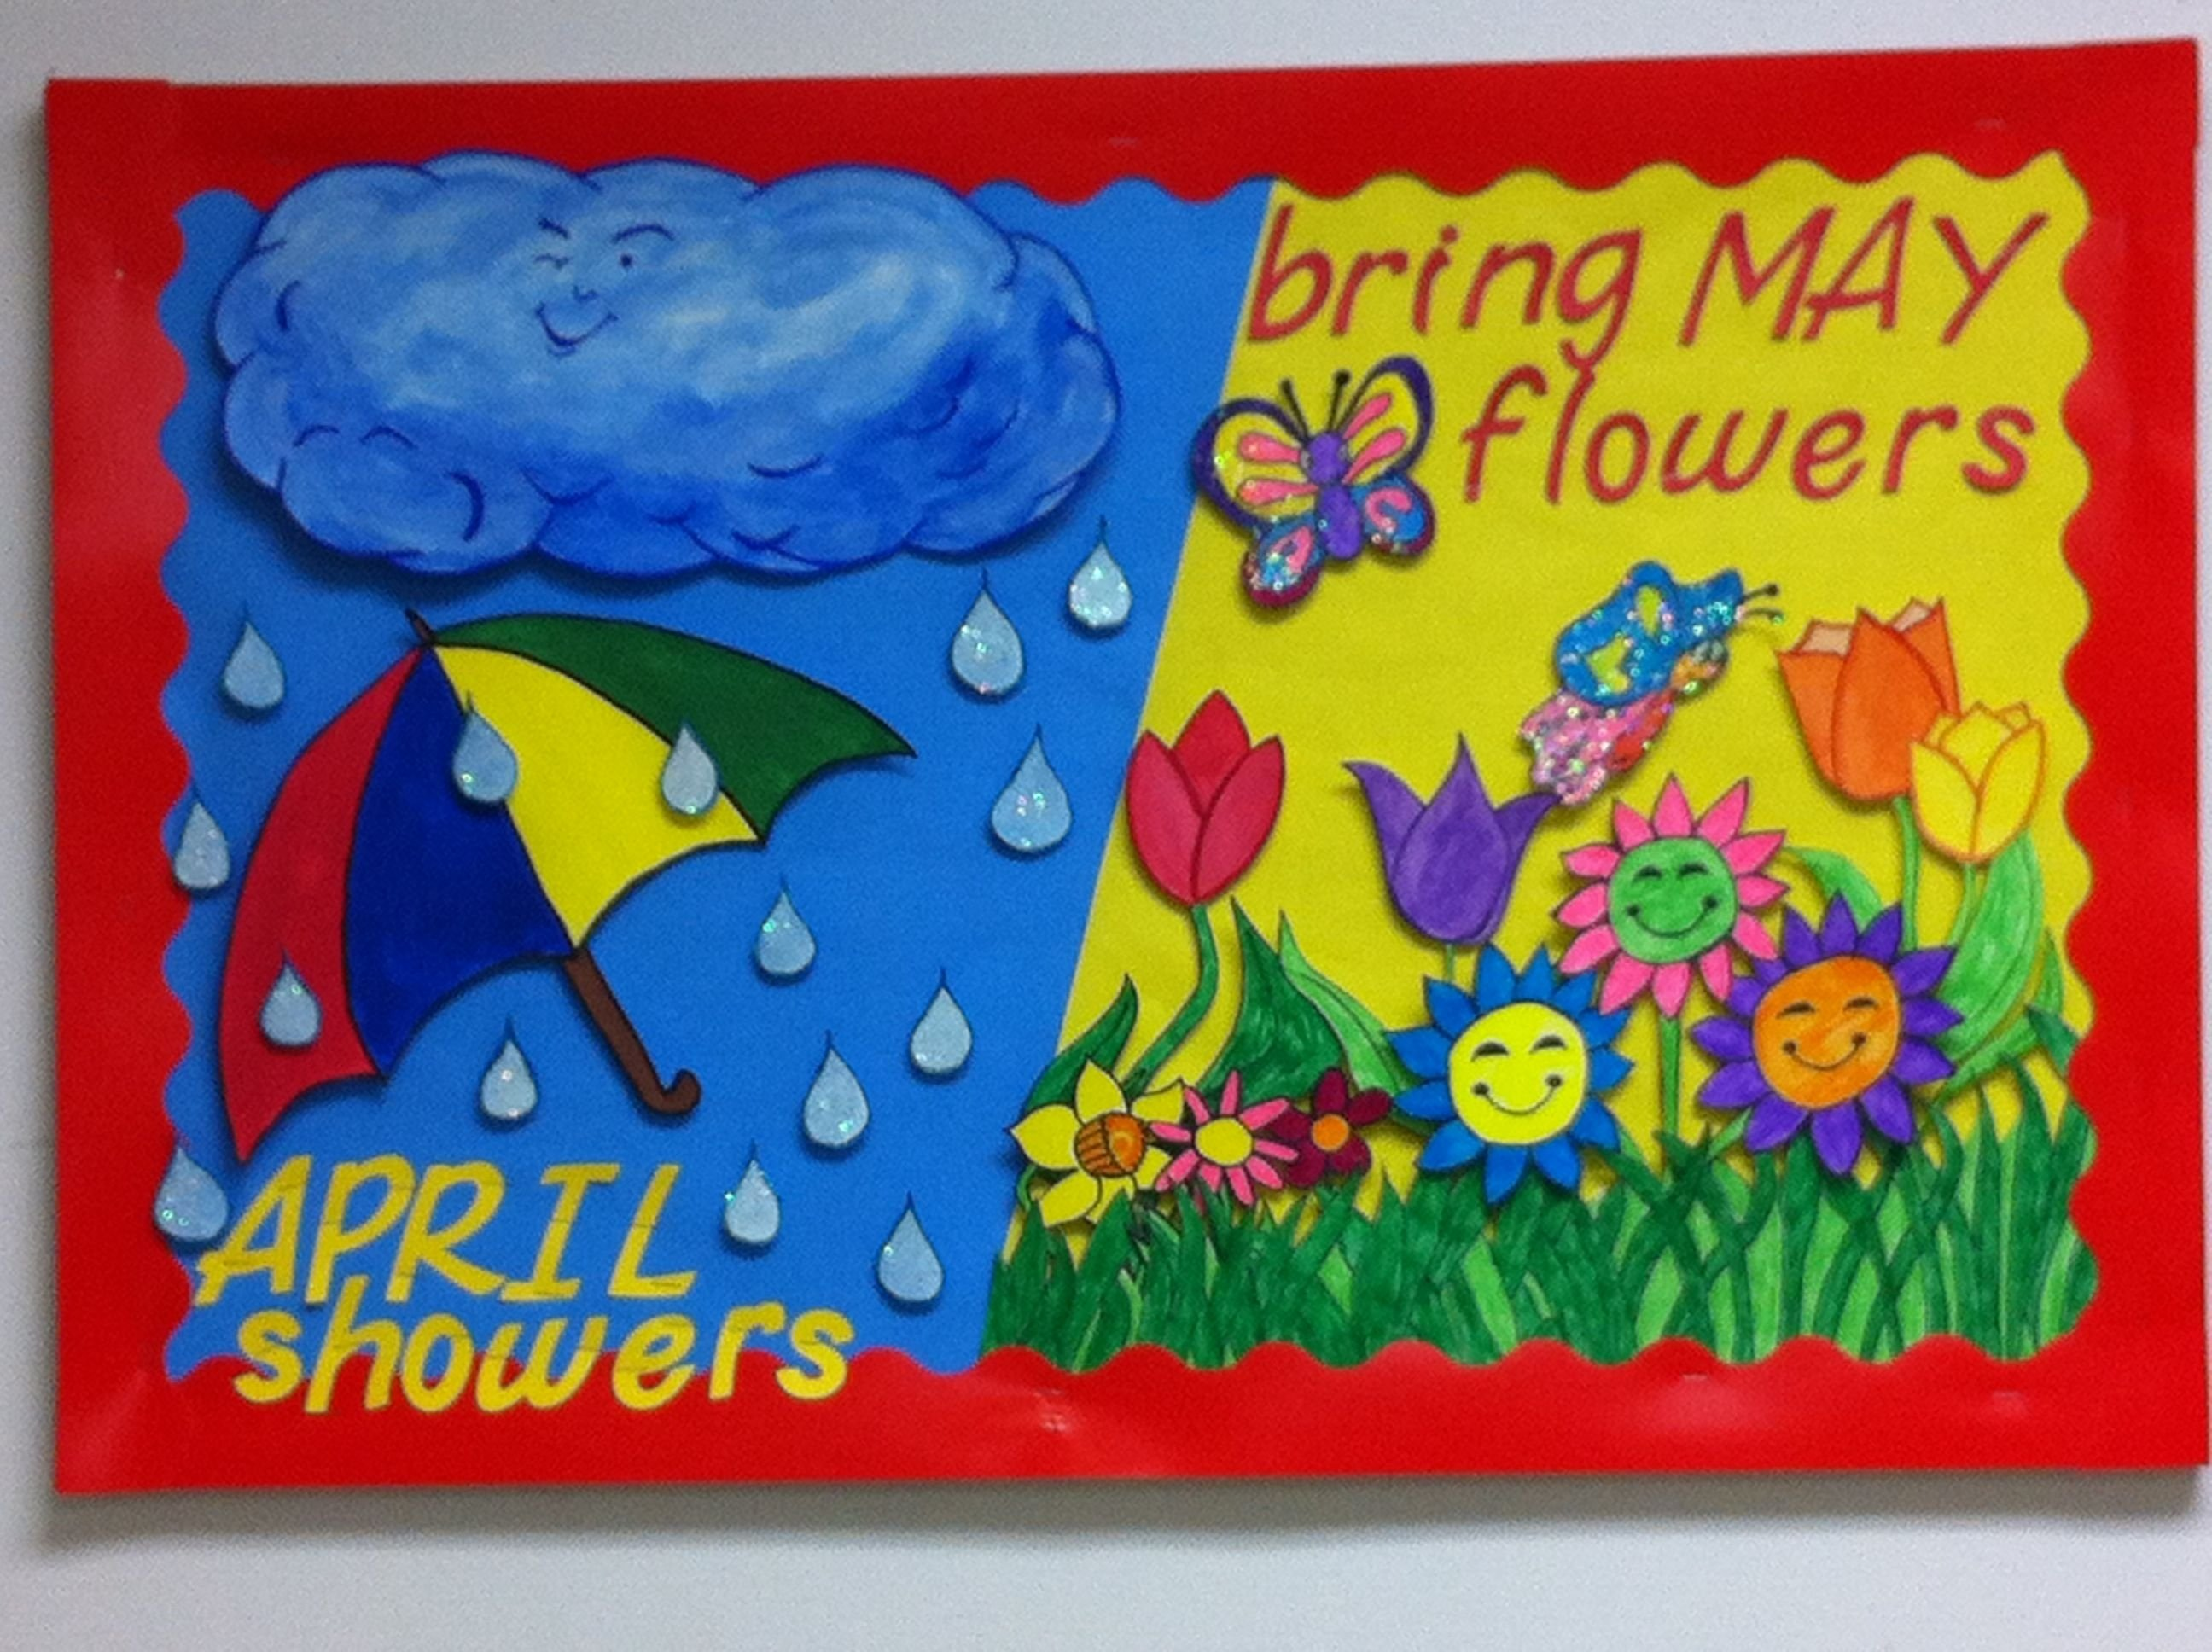 10 Attractive April Showers Bulletin Board Ideas april going into may themed classroom bulletin board ideas 2020